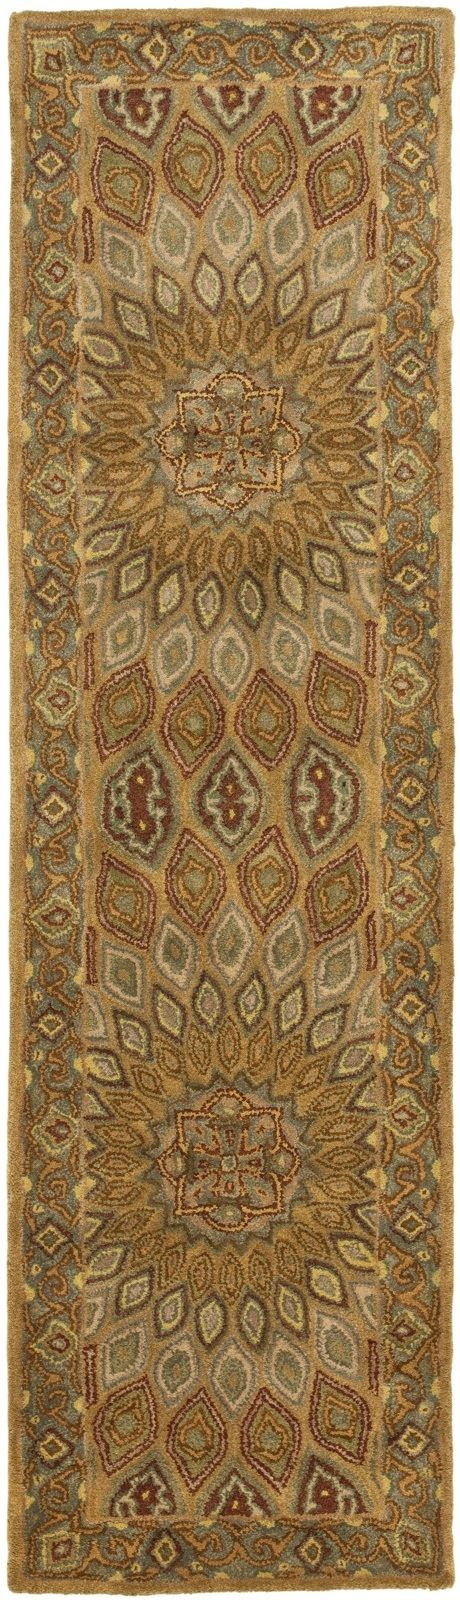 safavieh heritage traditional area rug collection